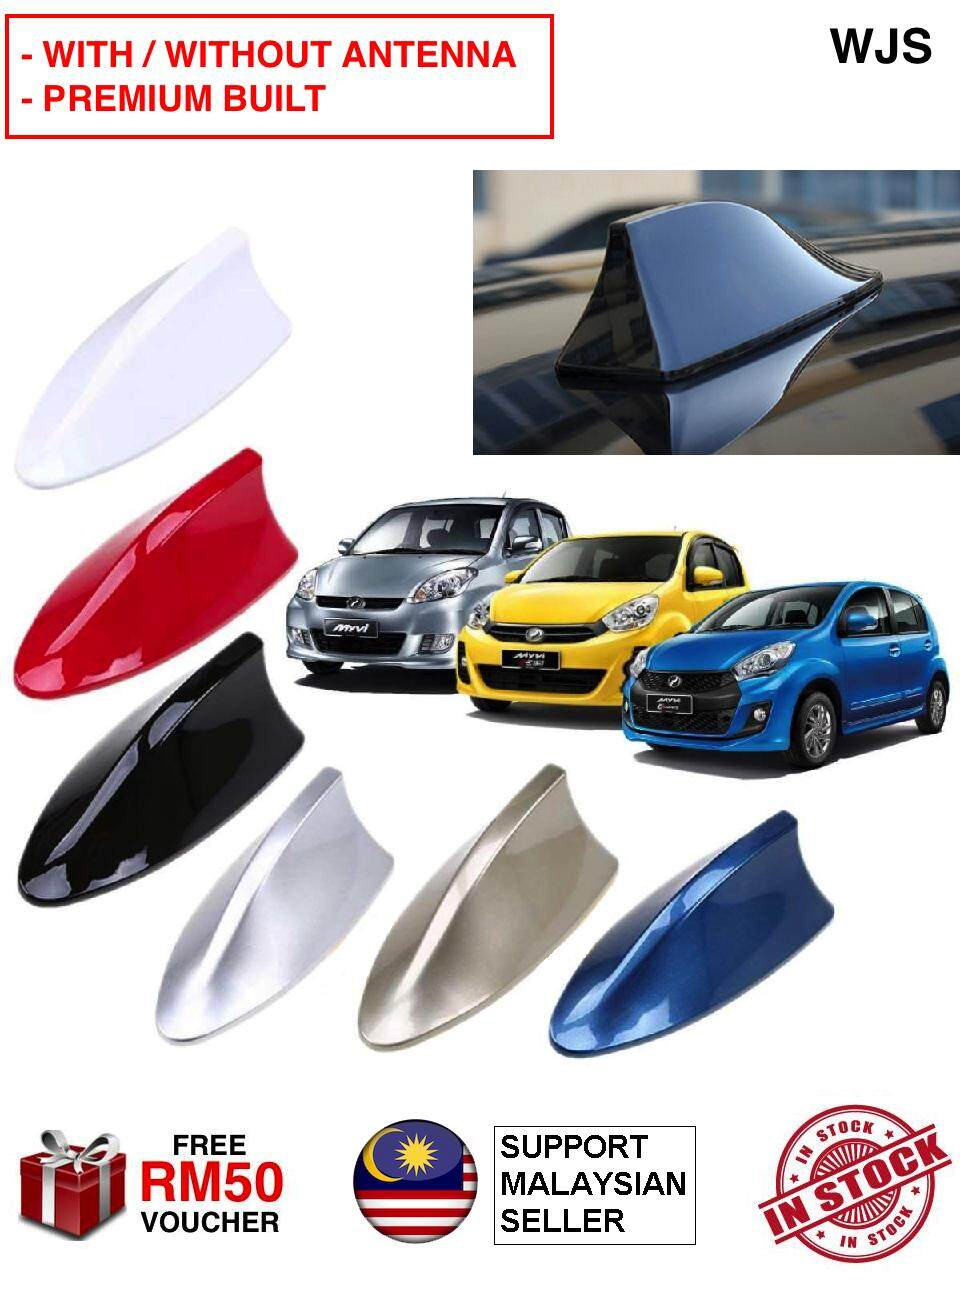 (WITH & WITHOUT ANTENNA OPTION) WJS Universal Car Shark Fin Car Truck Van Roof Shark Fin Optional Antenna Radio Signal Aerial BLACK RED SILVER WHITE [FREE RM 50 VOUCHER]